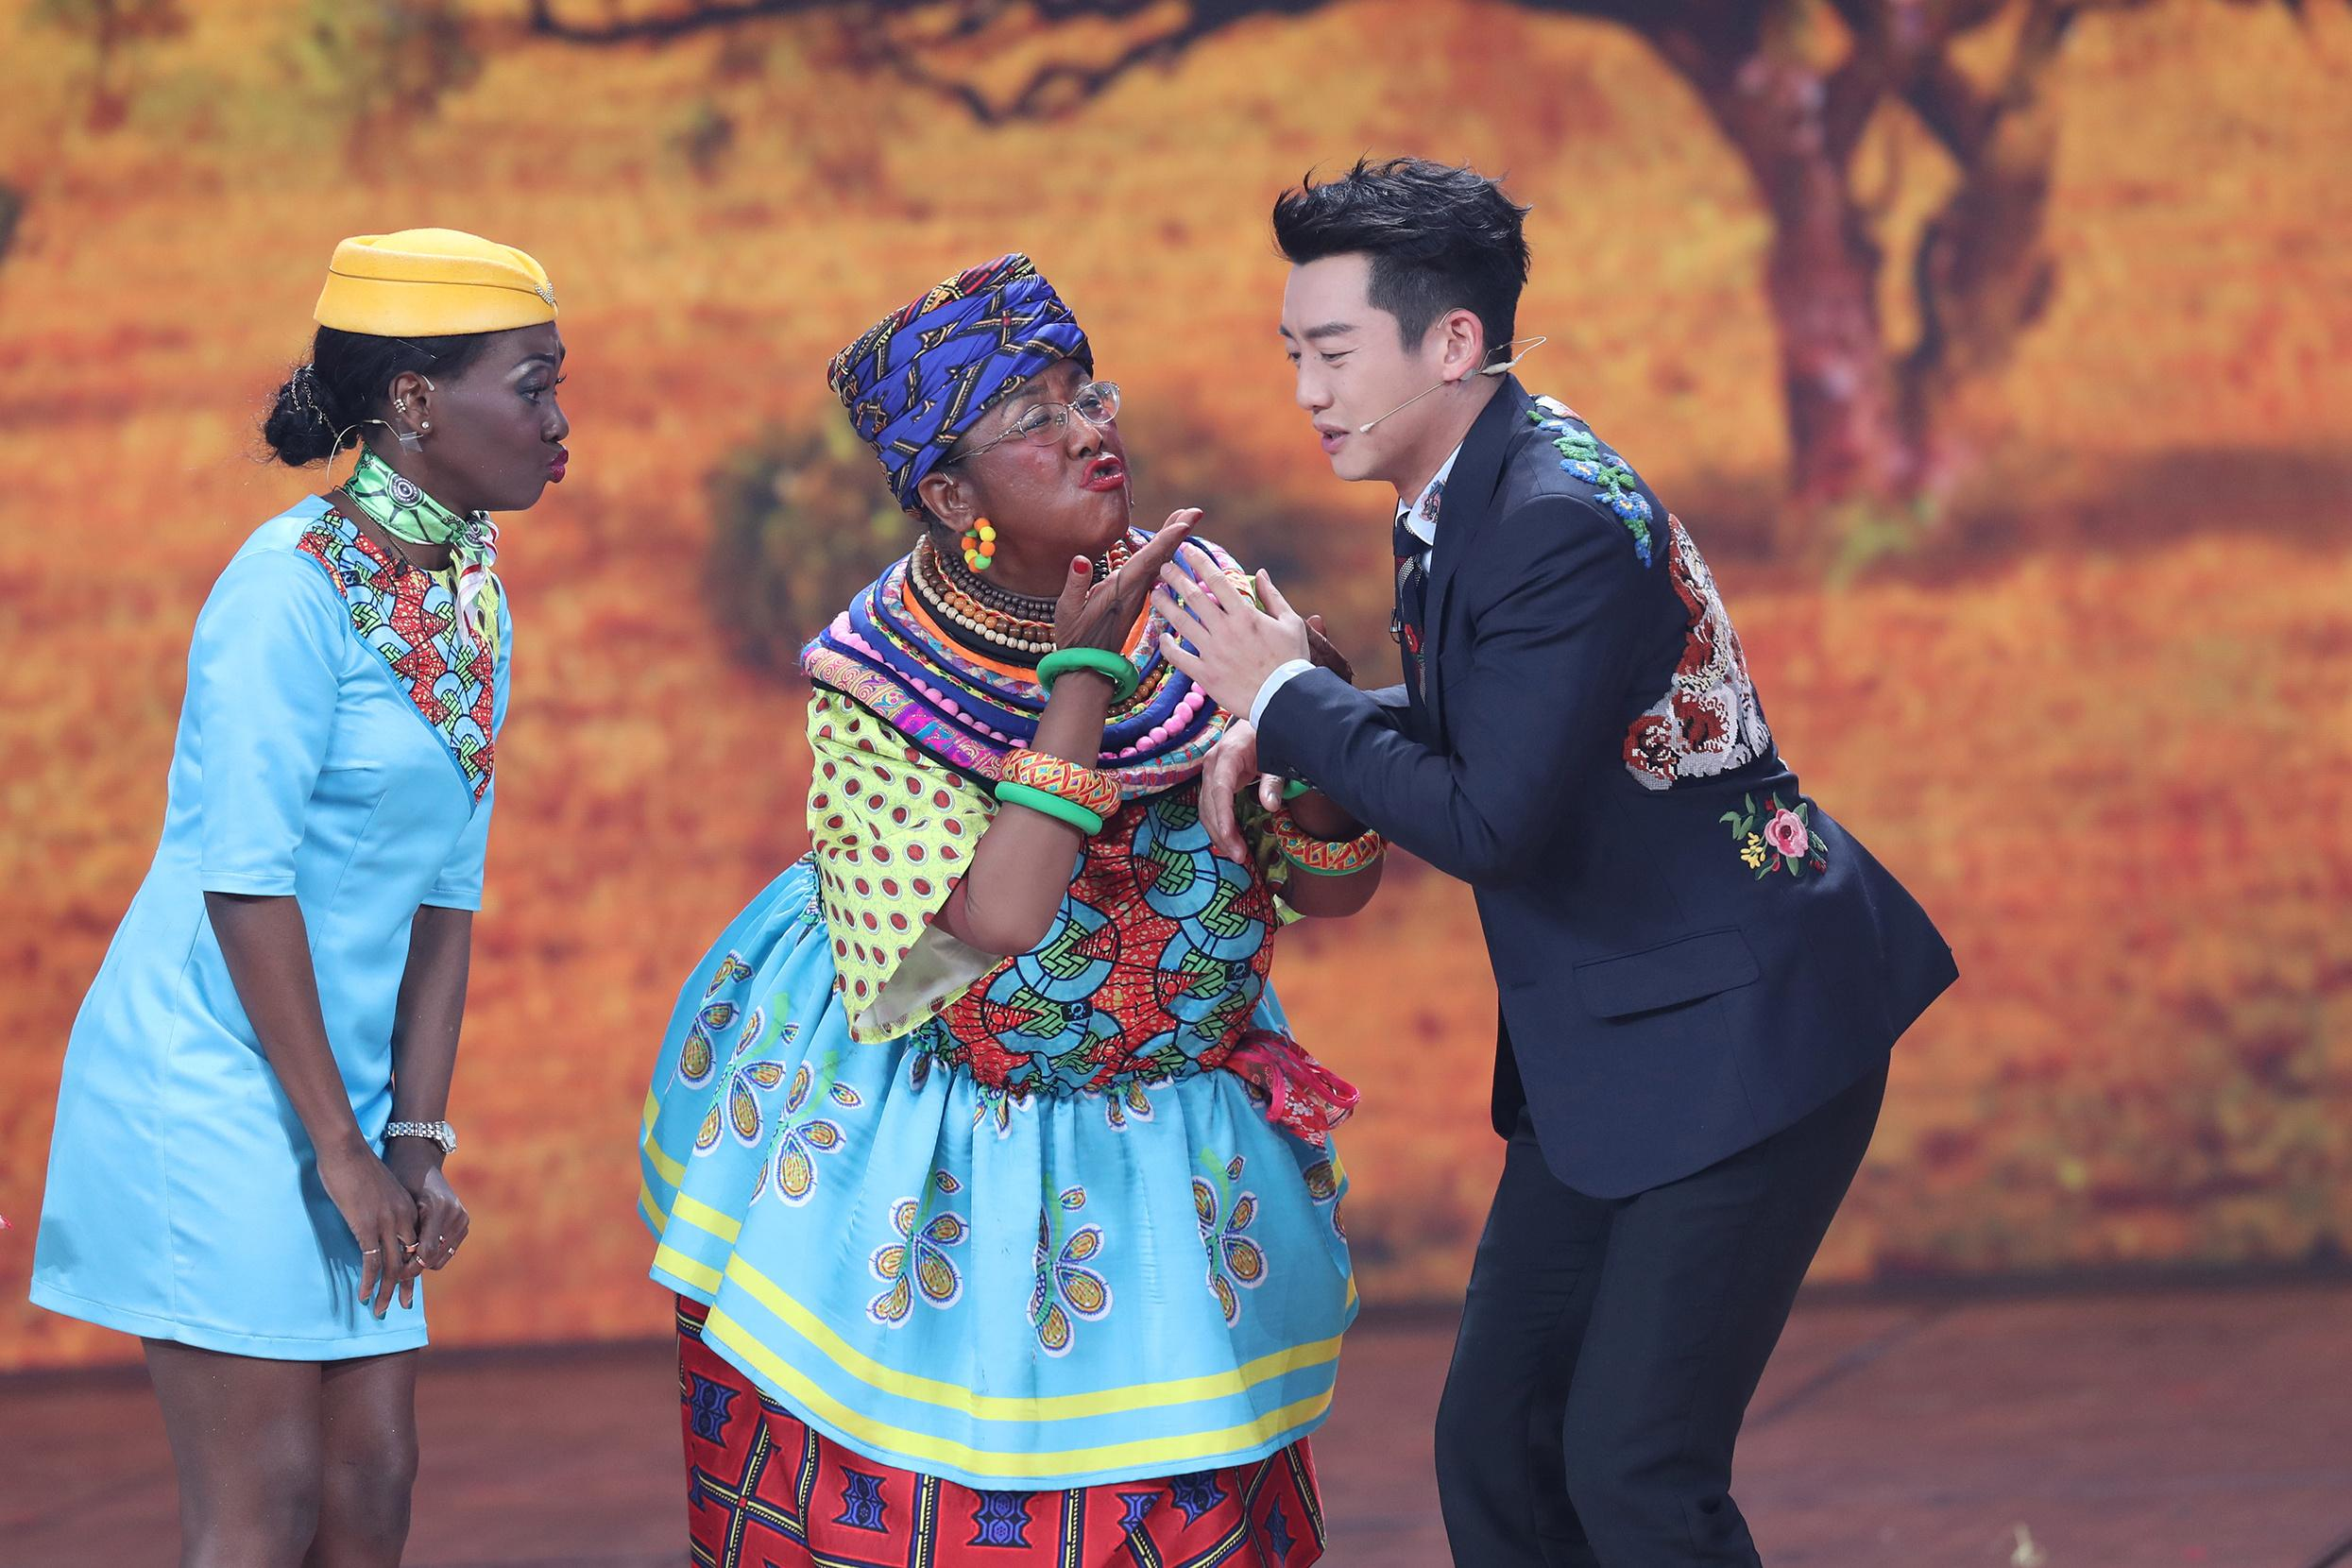 China denies racism, says hyping up TV blackface skit